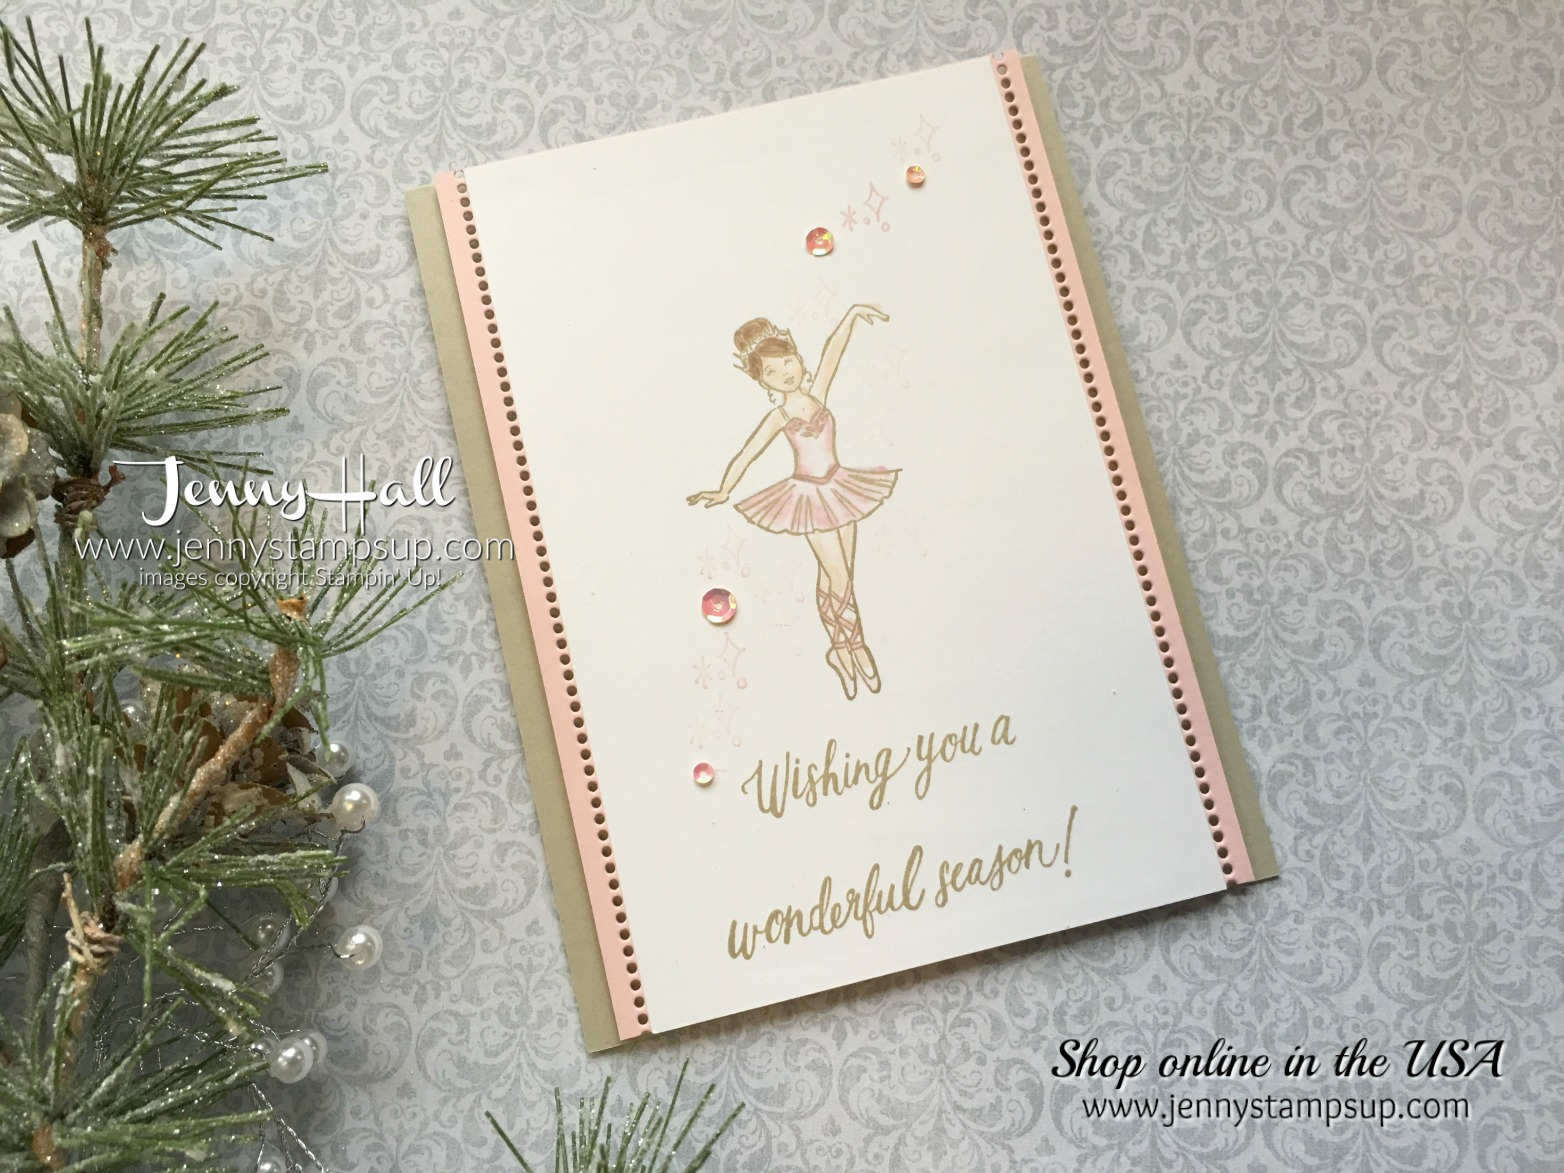 Simple Stamped Ballerina card by Jenny Hall at www.jennystampsup.com for cardmaking, video tutorials, scrapbooking and more!